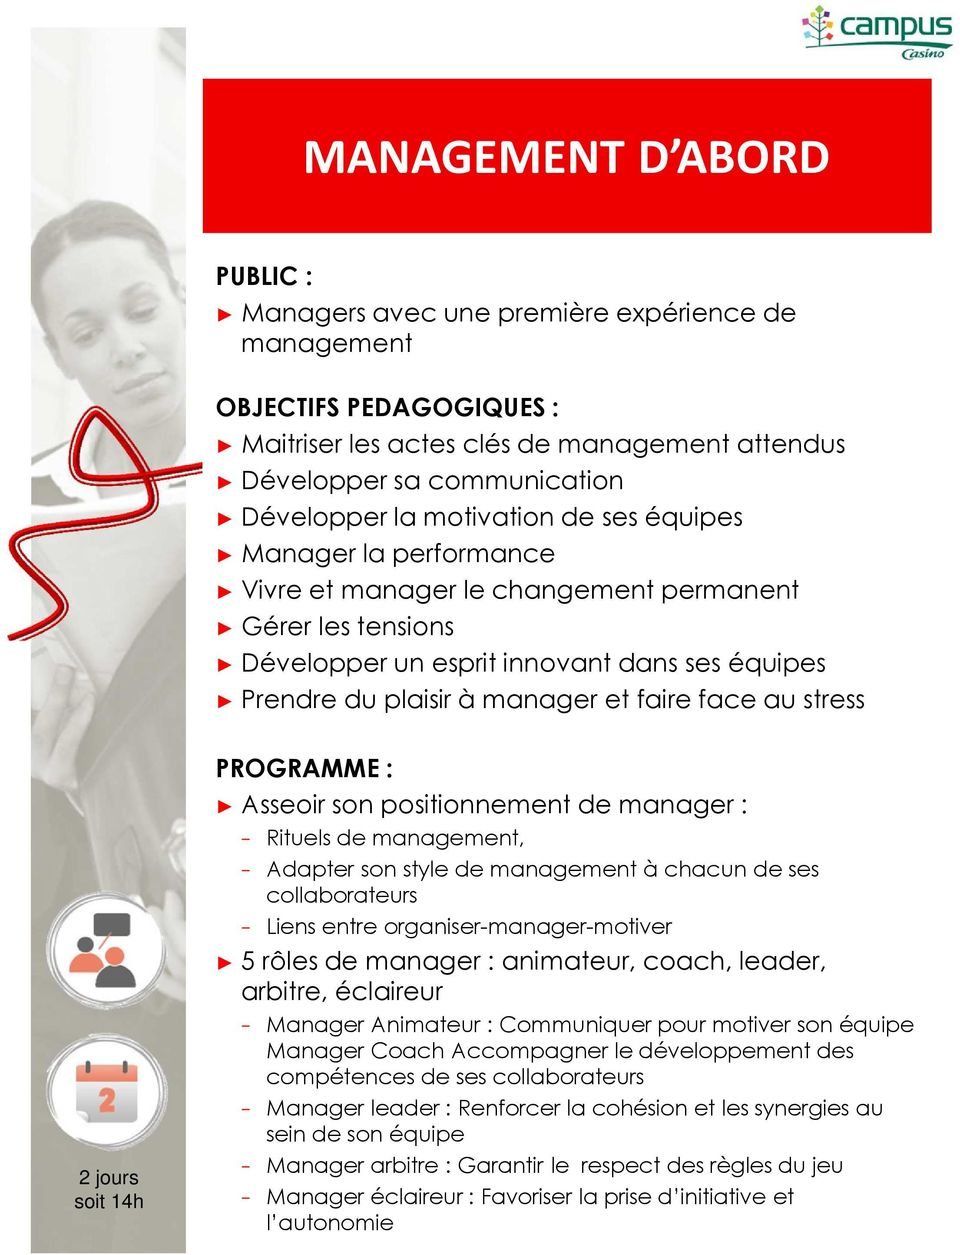 de manager : Rituels de management, Adapter son style de management à chacun de ses collaborateurs Liens entre organiser-manager-motiver 5 rôles de manager : animateur, coach, leader, arbitre,